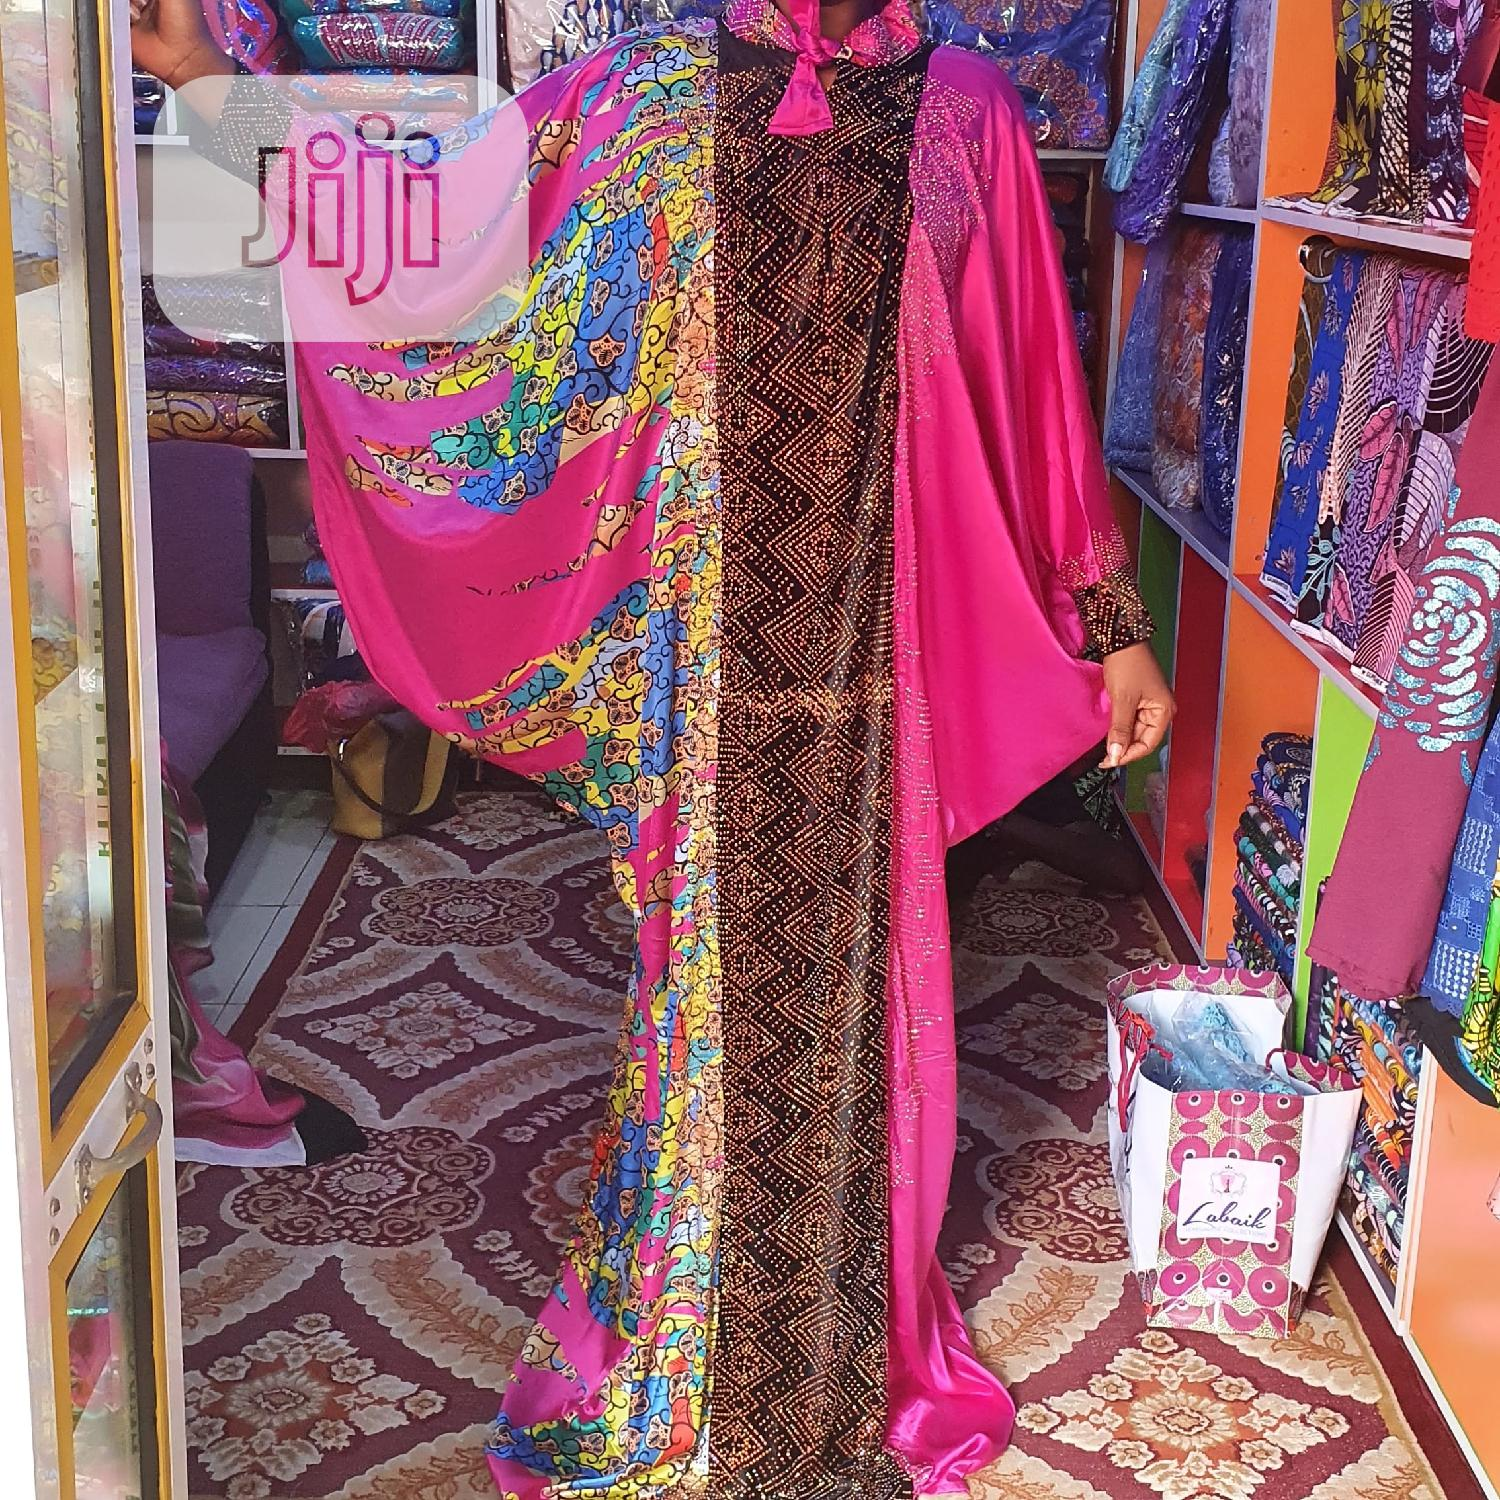 Beautiful Senegalese Gowns Available at Affordable Prices | Clothing for sale in Dutse-Alhaji, Abuja (FCT) State, Nigeria